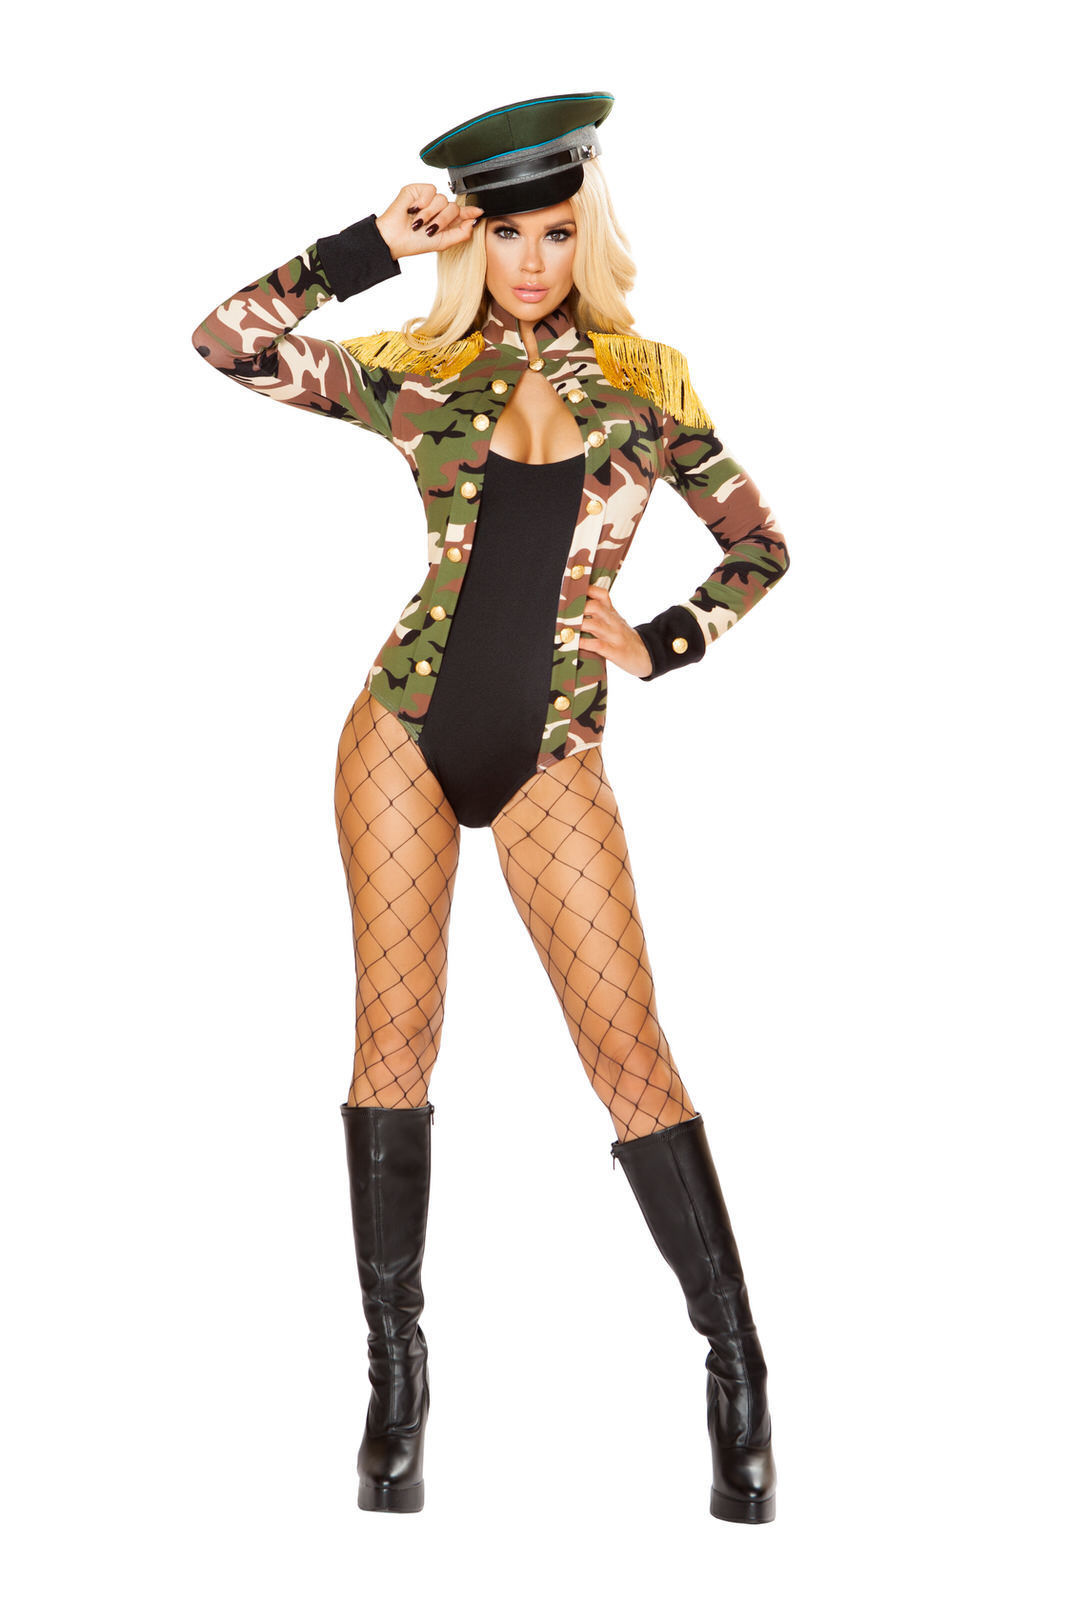 Sexy Roma 1pc Army Girl Military Camo Romper Halloween Costume W/WO HAT 4817